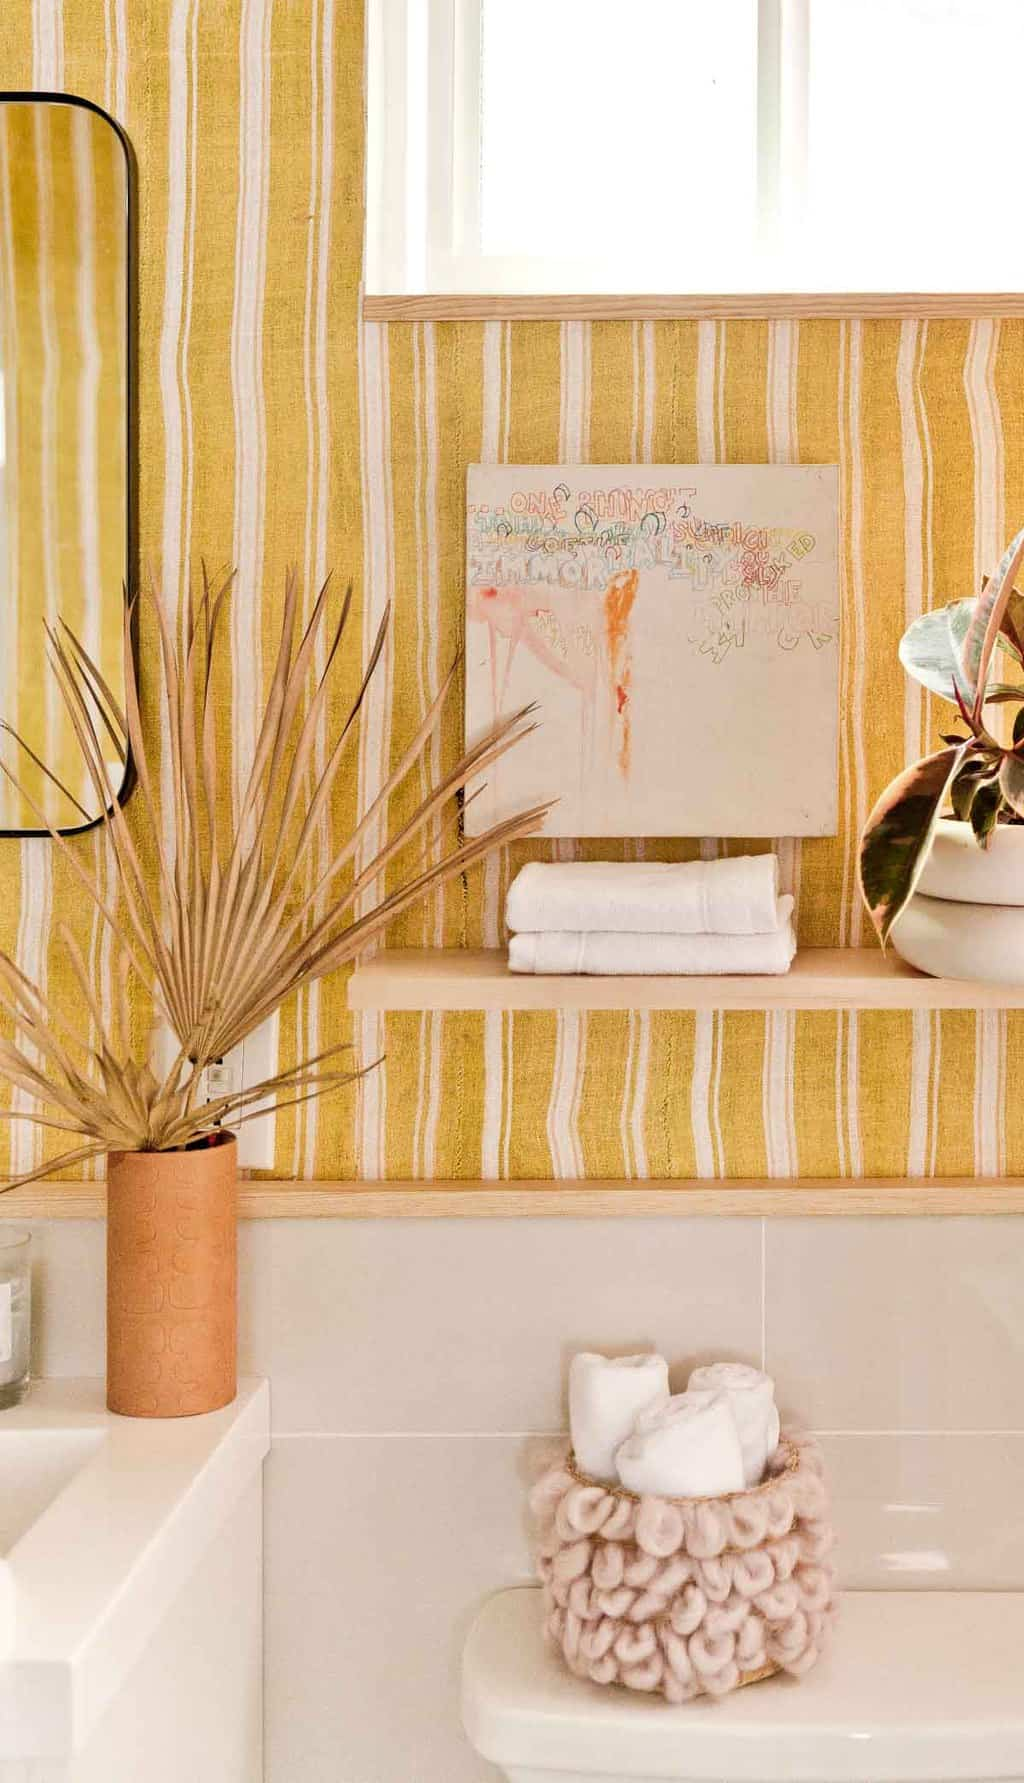 Photo of yellow striped bathroom makeover with floating shelf.